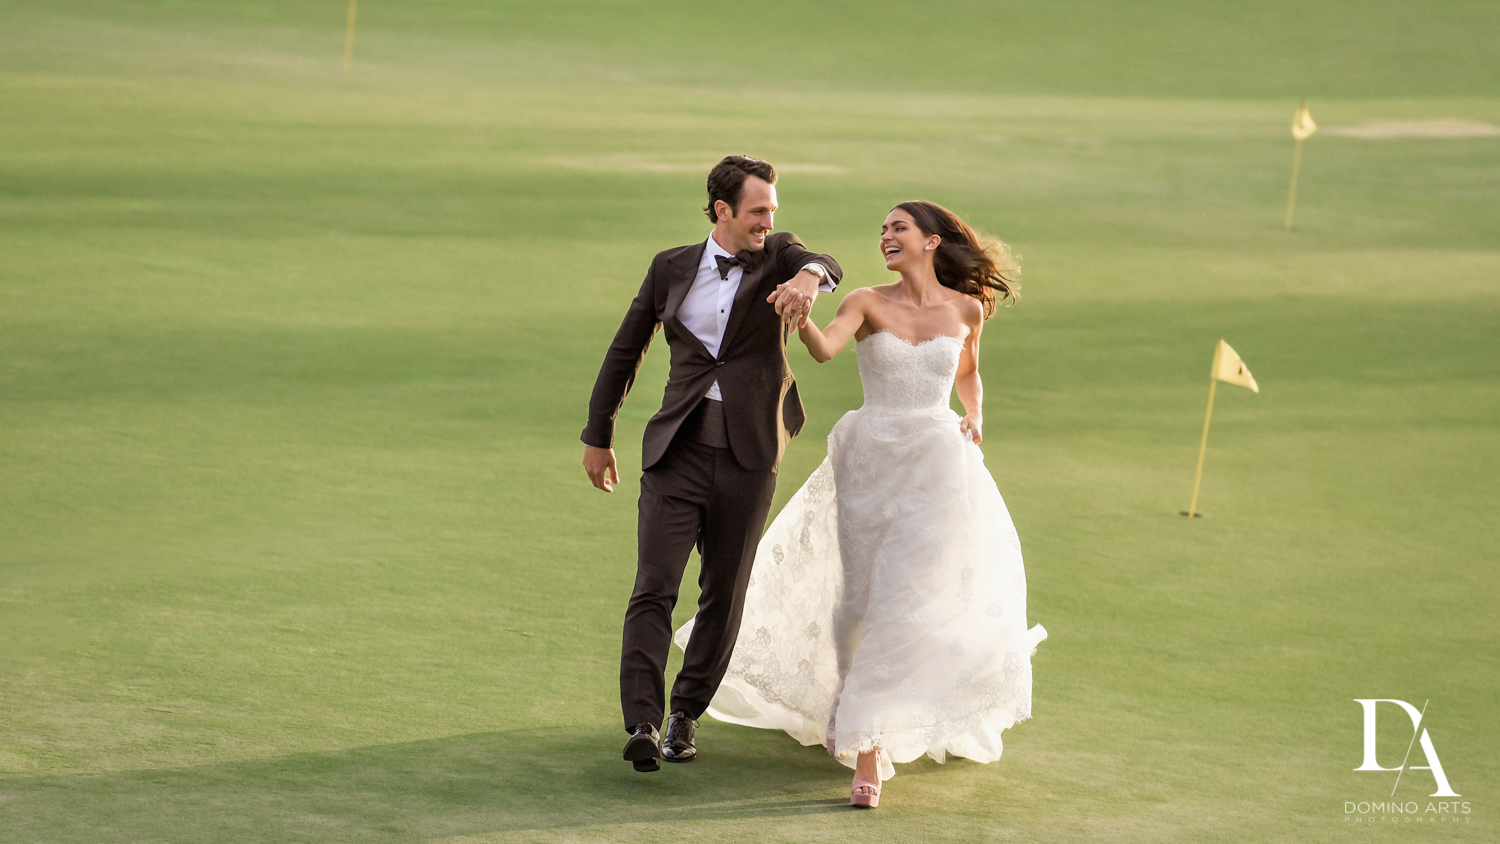 Stunning Golf Course Wedding at PGA National Palm Beach by Domino Arts Photography